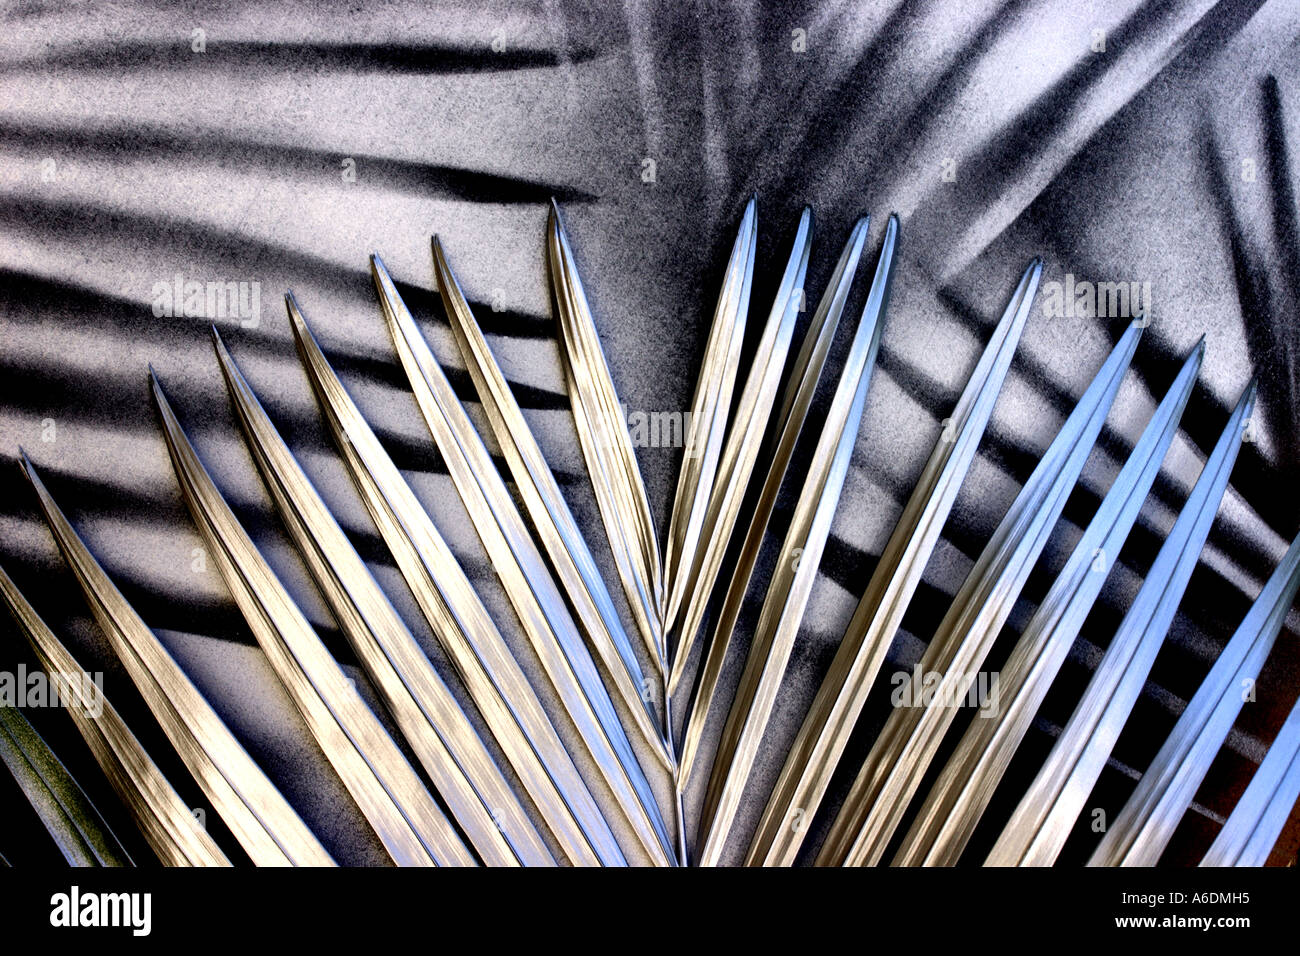 SILVER PALM FROND BAPDB5965 - Stock Image